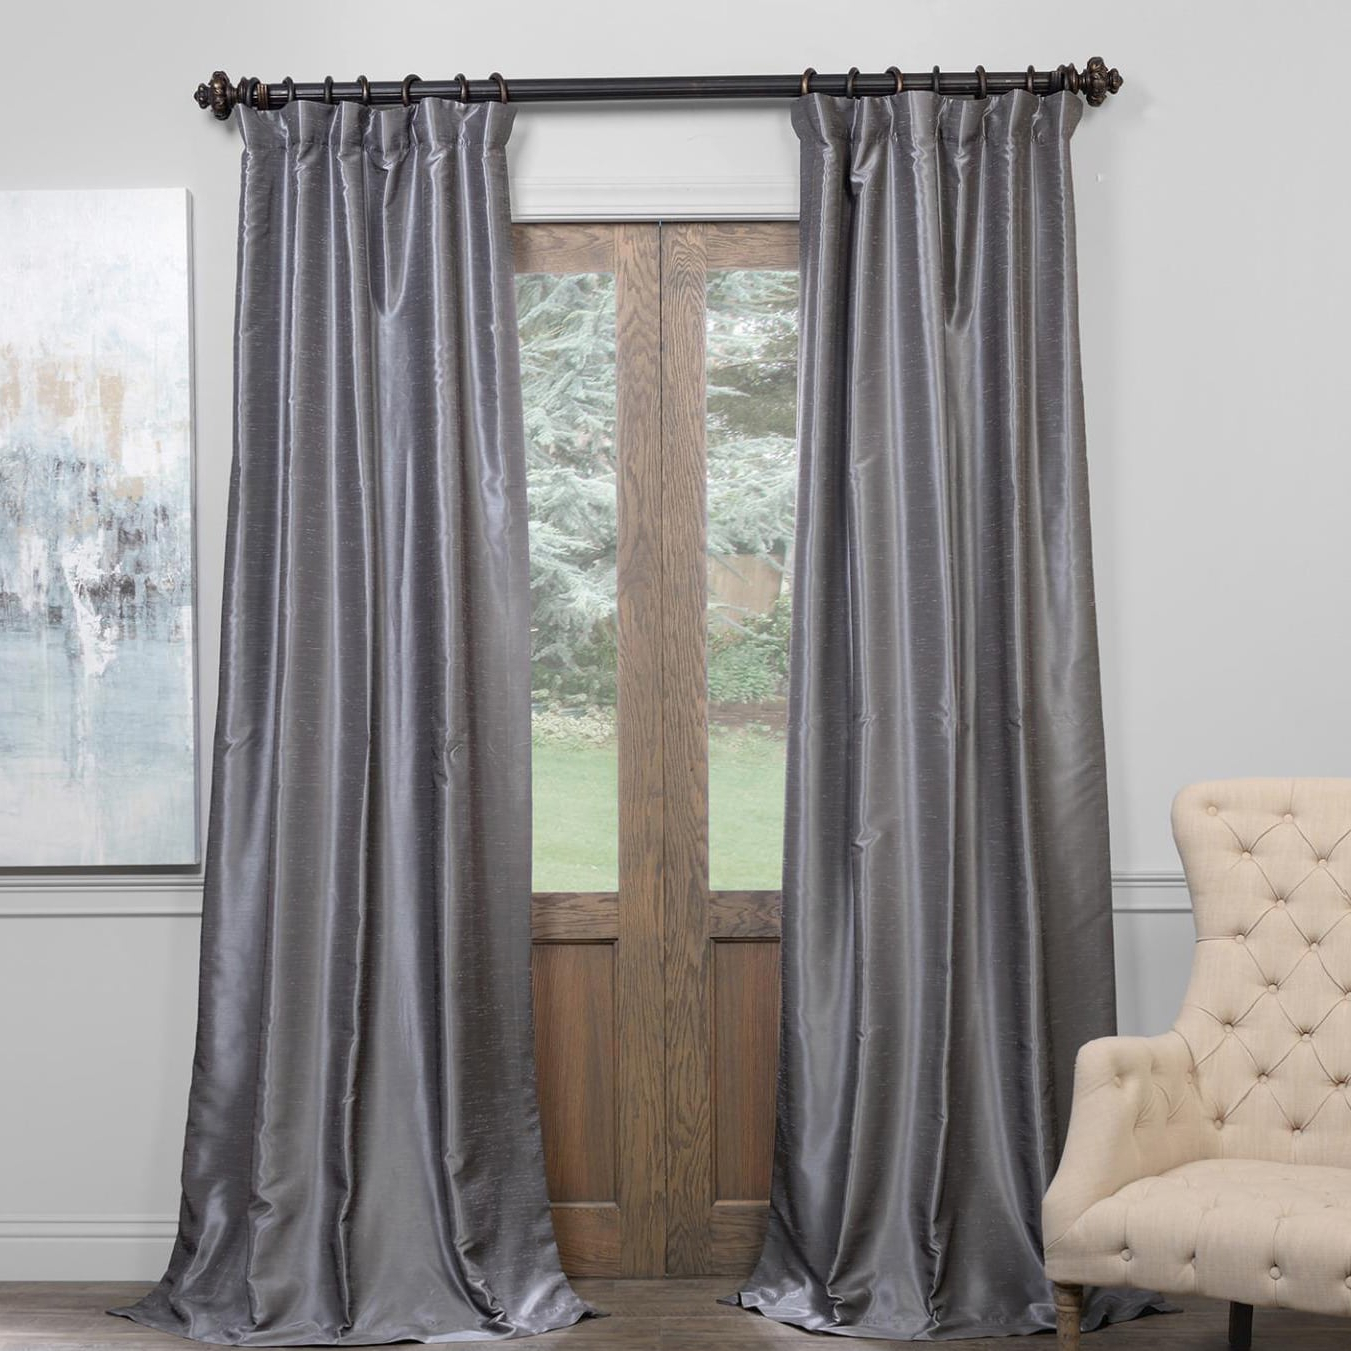 Recent Exclusive Fabrics True Blackout Vintage Textured Faux In Storm Grey Vintage Faux Textured Dupioni Single Silk Curtain Panels (View 12 of 20)